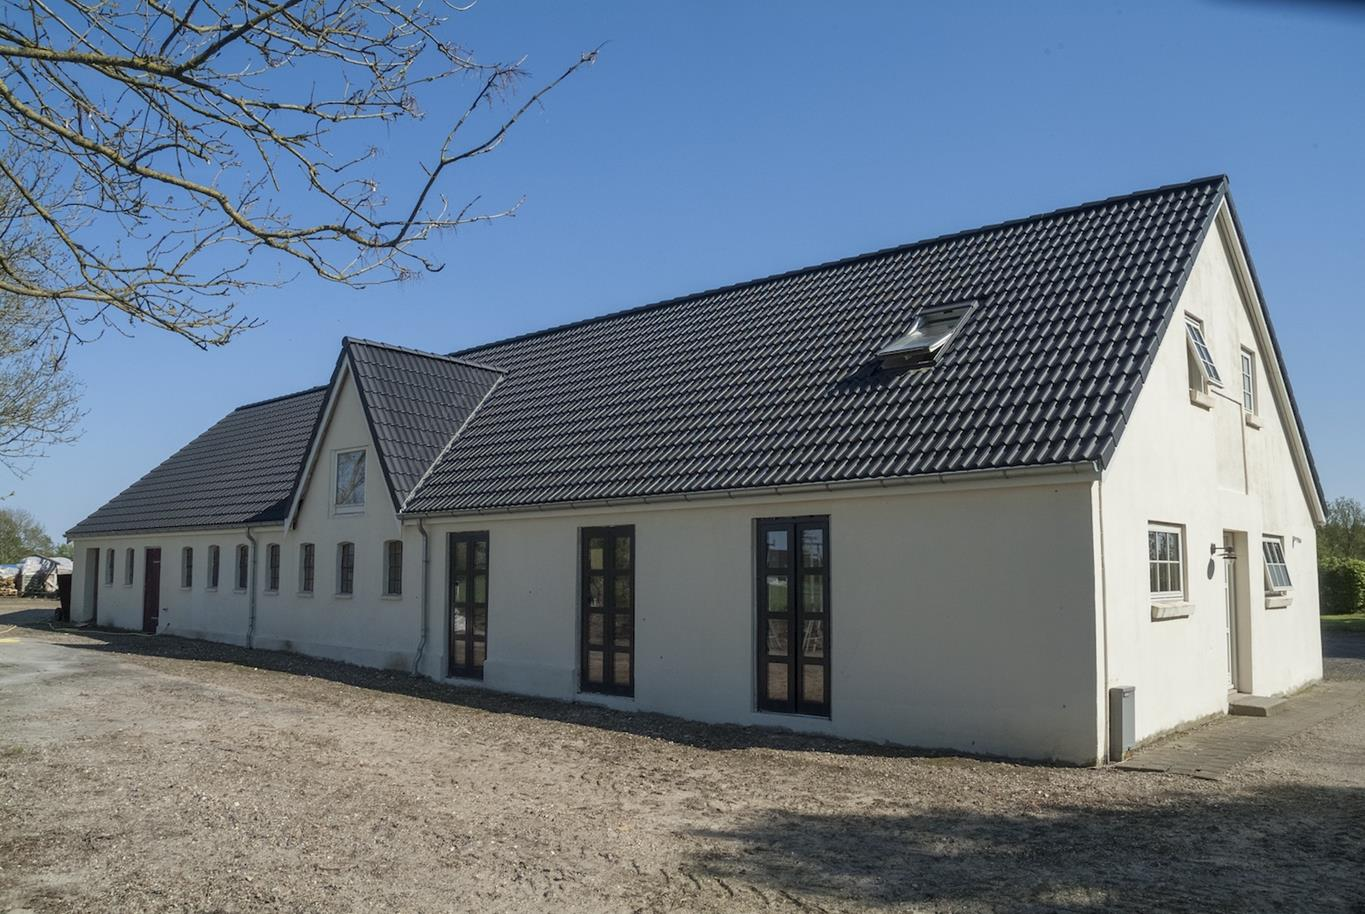 Lightweight concrete tiles on a pitched roof